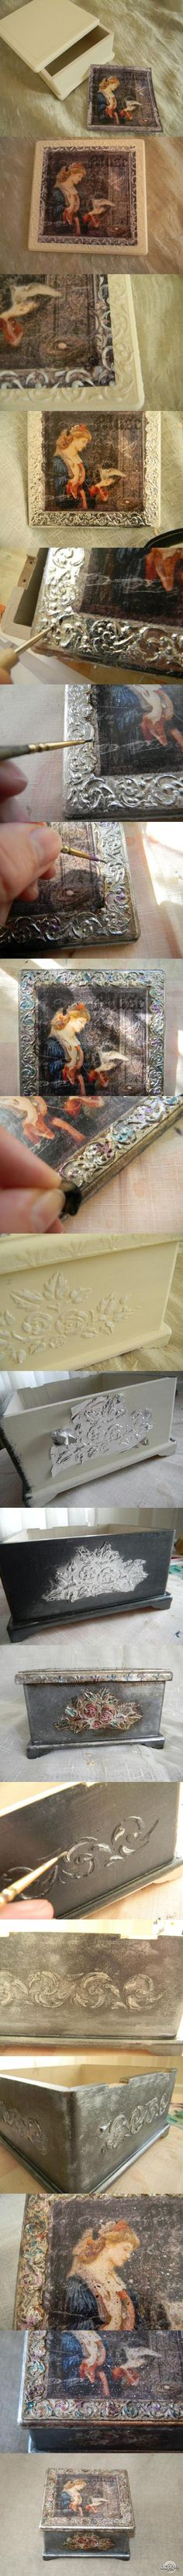 Handmade Home Decor Decoupage Tutorial, Decoupage Paper, Diy Home Decor Projects, Projects To Try, Wax Paper Transfers, Creative Box, Wood Painting Art, Handmade Home Decor, Altered Art